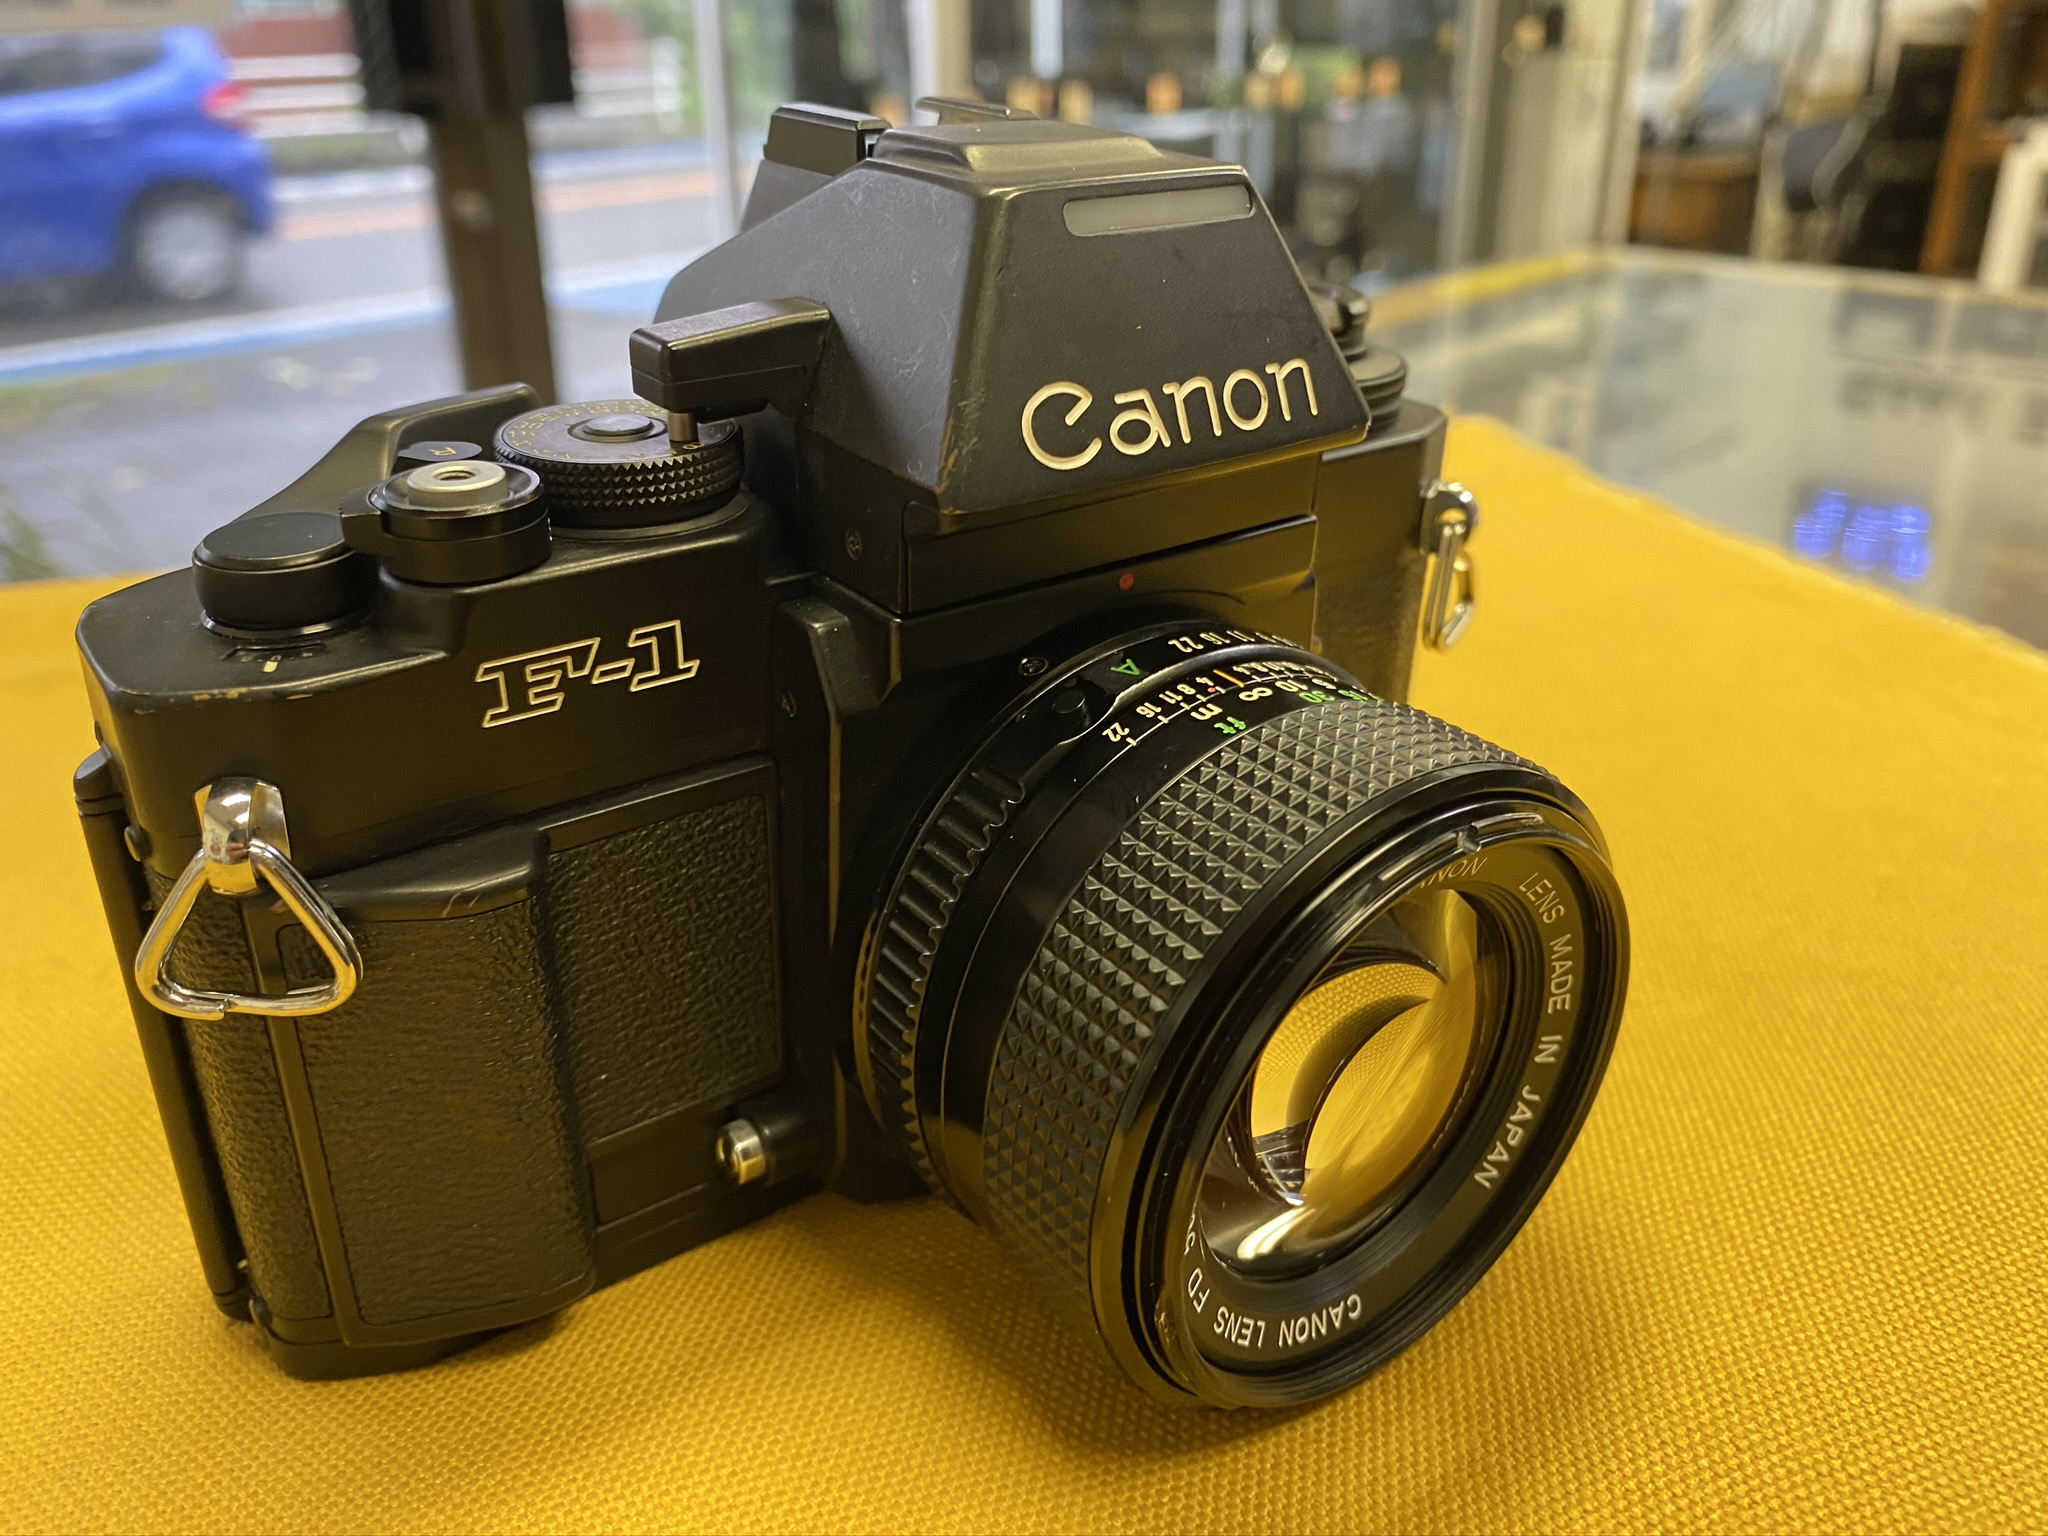 ‪Canon New F-1 50mm F1.4付‬ ‪‪¥ 35,000( 税込 )‬